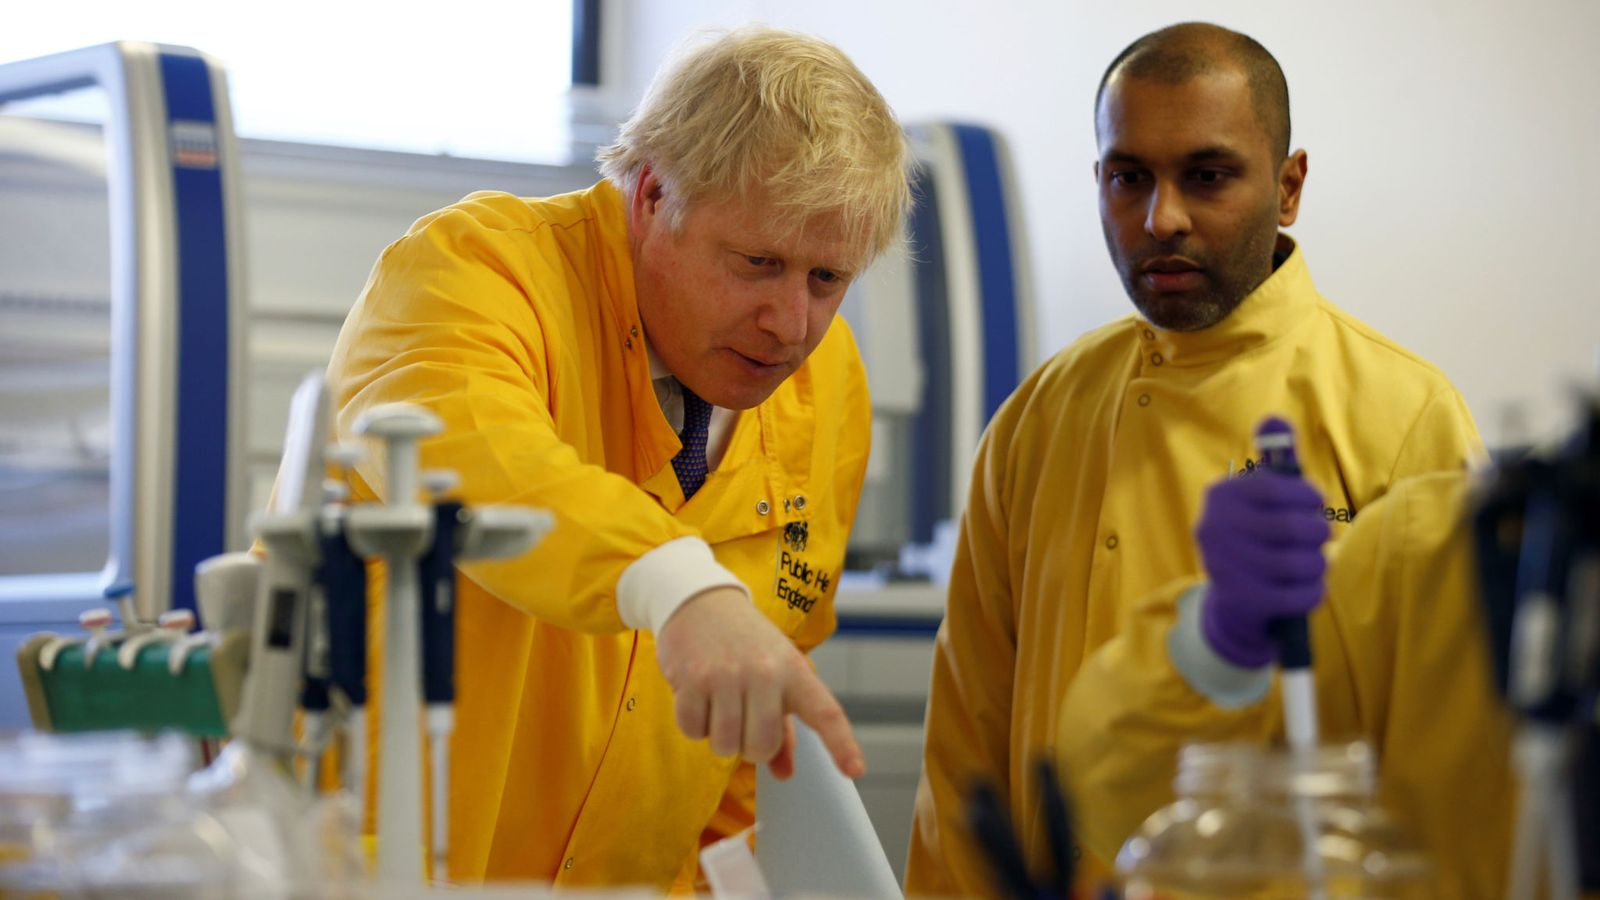 The PM said the government is 'making every possible preparation', amid expectations the virus will spread